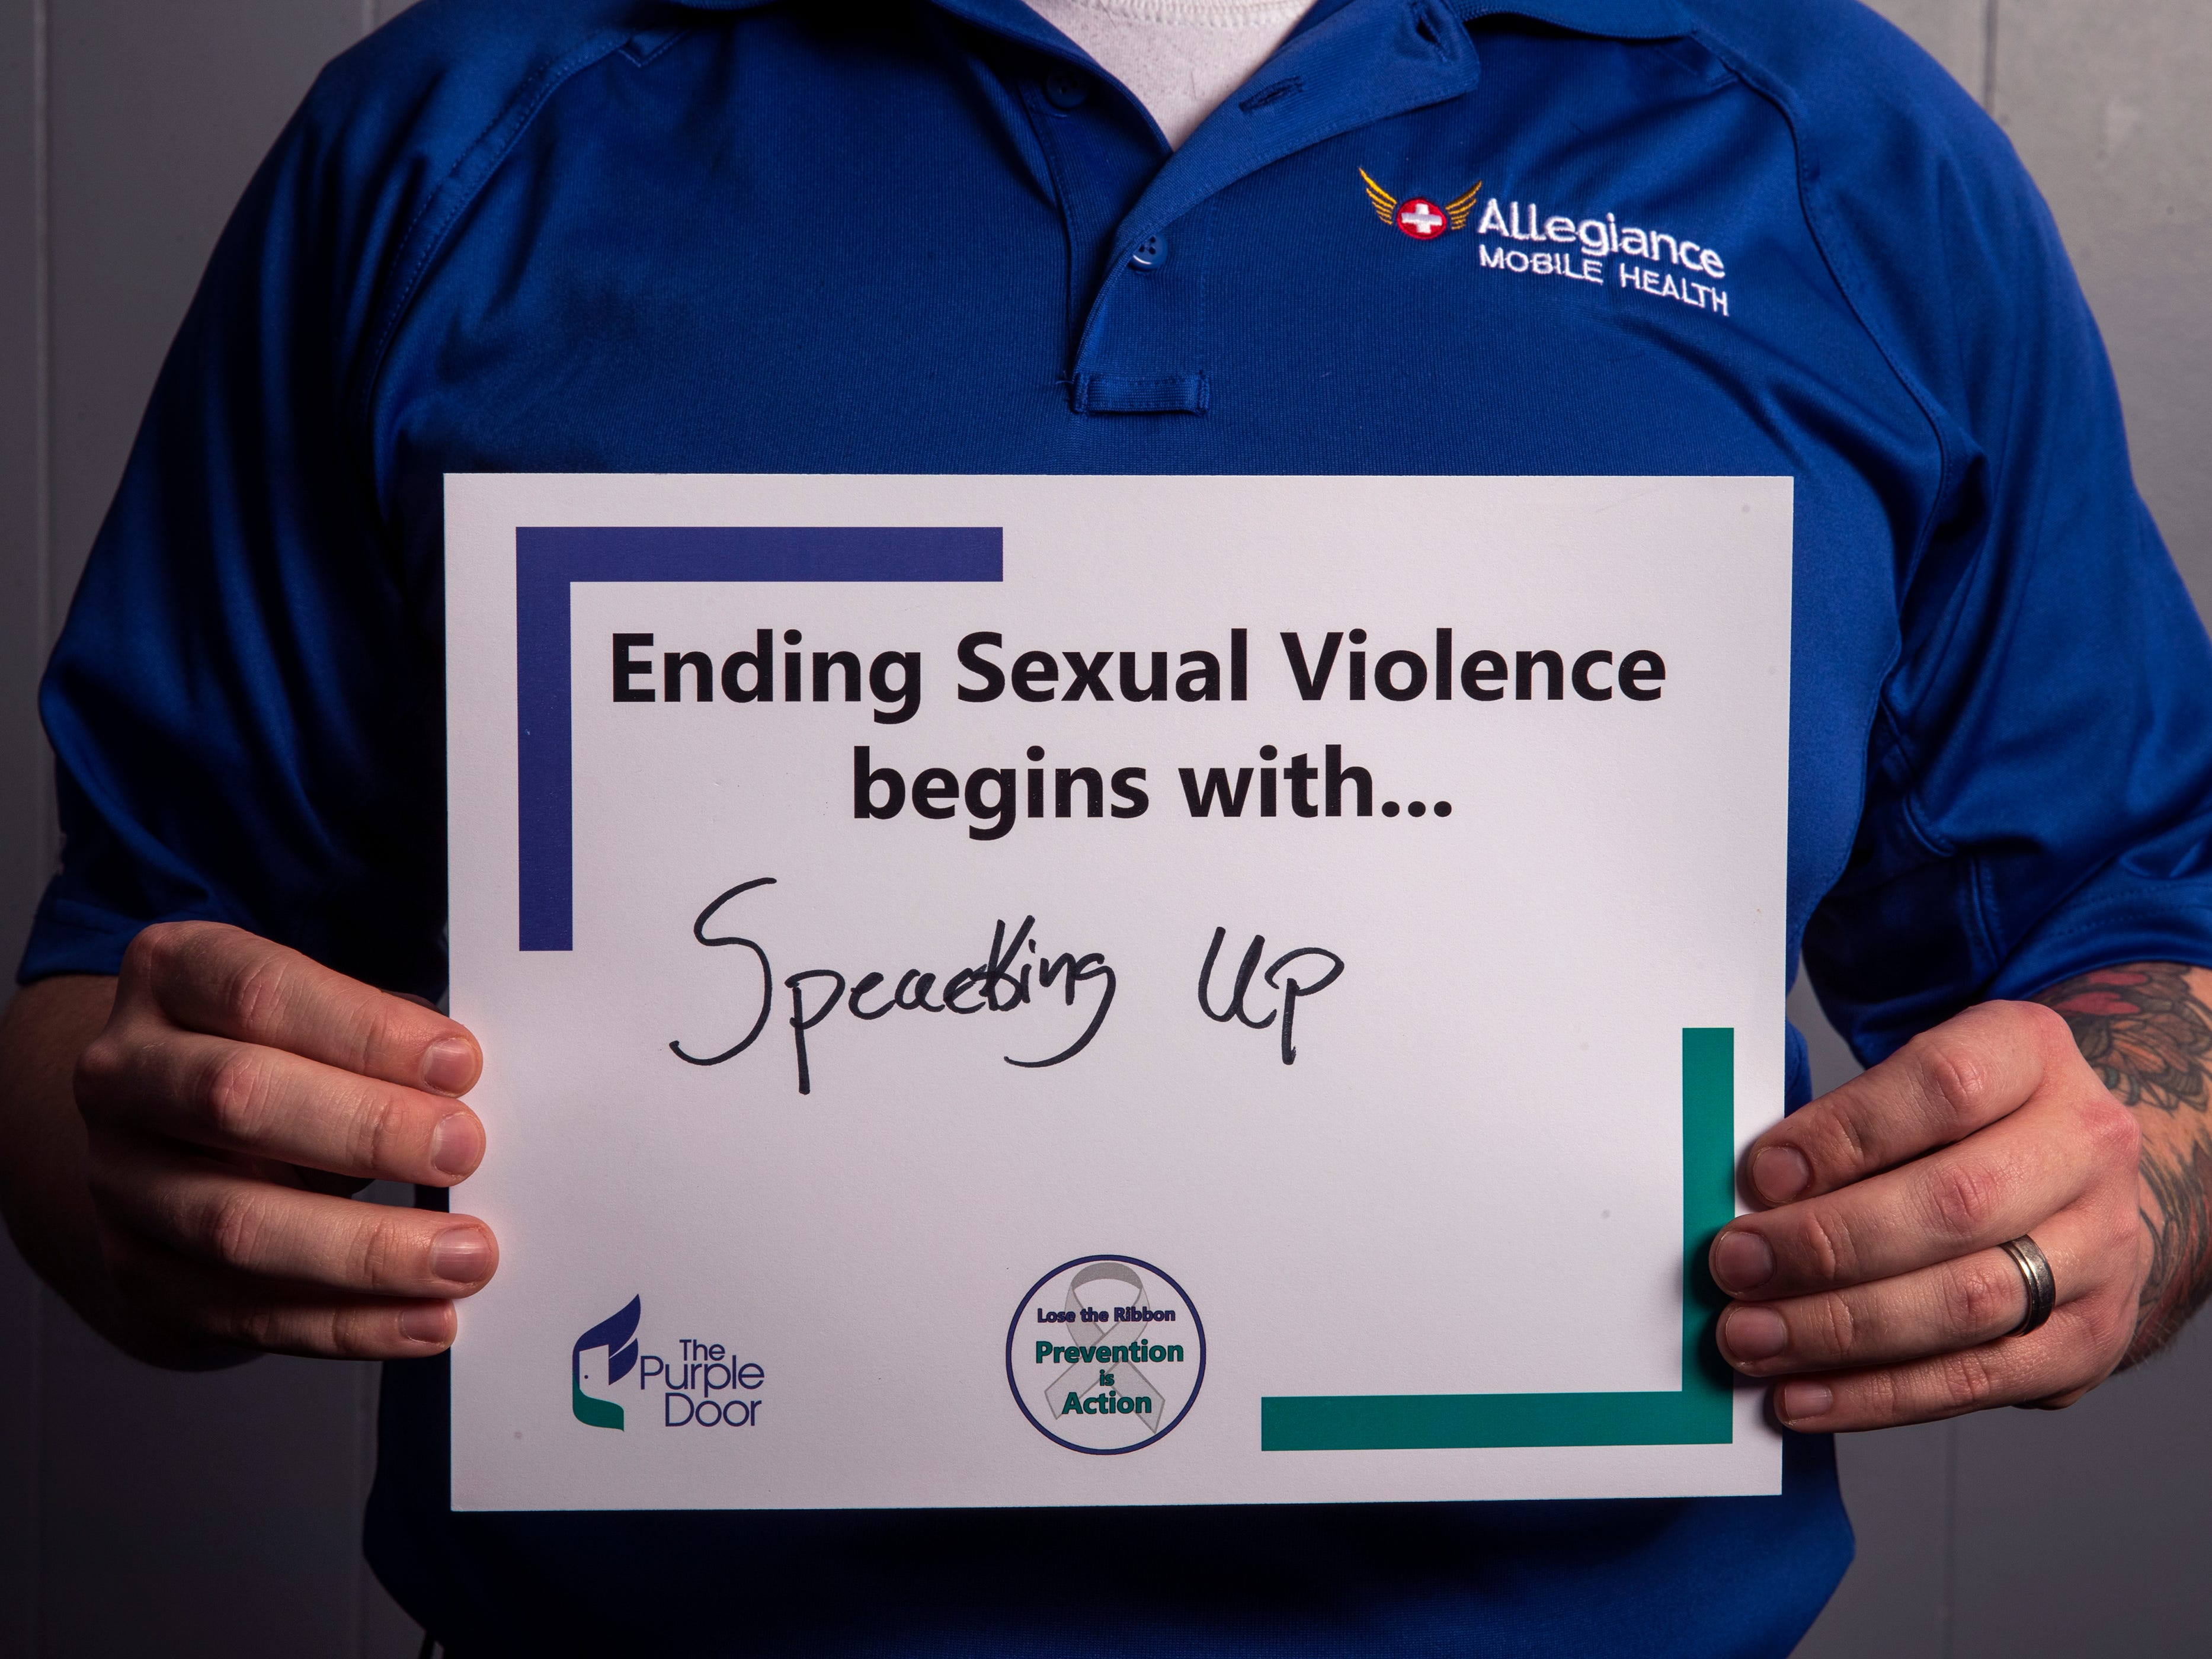 Harold Brown, an EMT with Allegiance Mobile Health, has pledged to help his patients have a voice. He is one of several people to participate in The Purple Door's campaign for April's Sexual Assault Awareness Month, which encourages people to take action against sexual assault and violence.